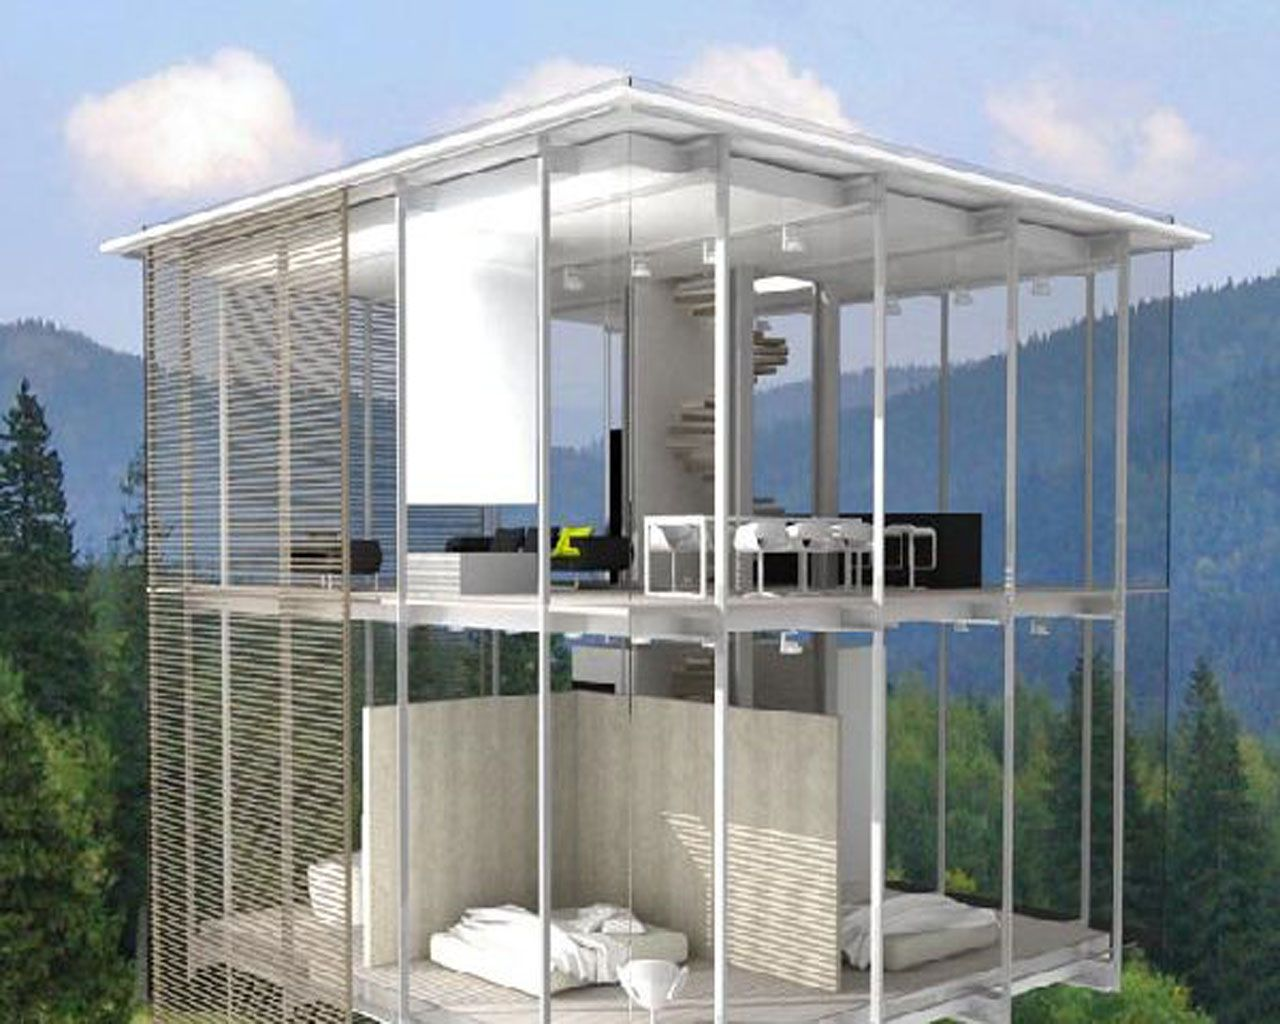 Modern Architecture House Glass modern transparent glass house design ideas | humble abode